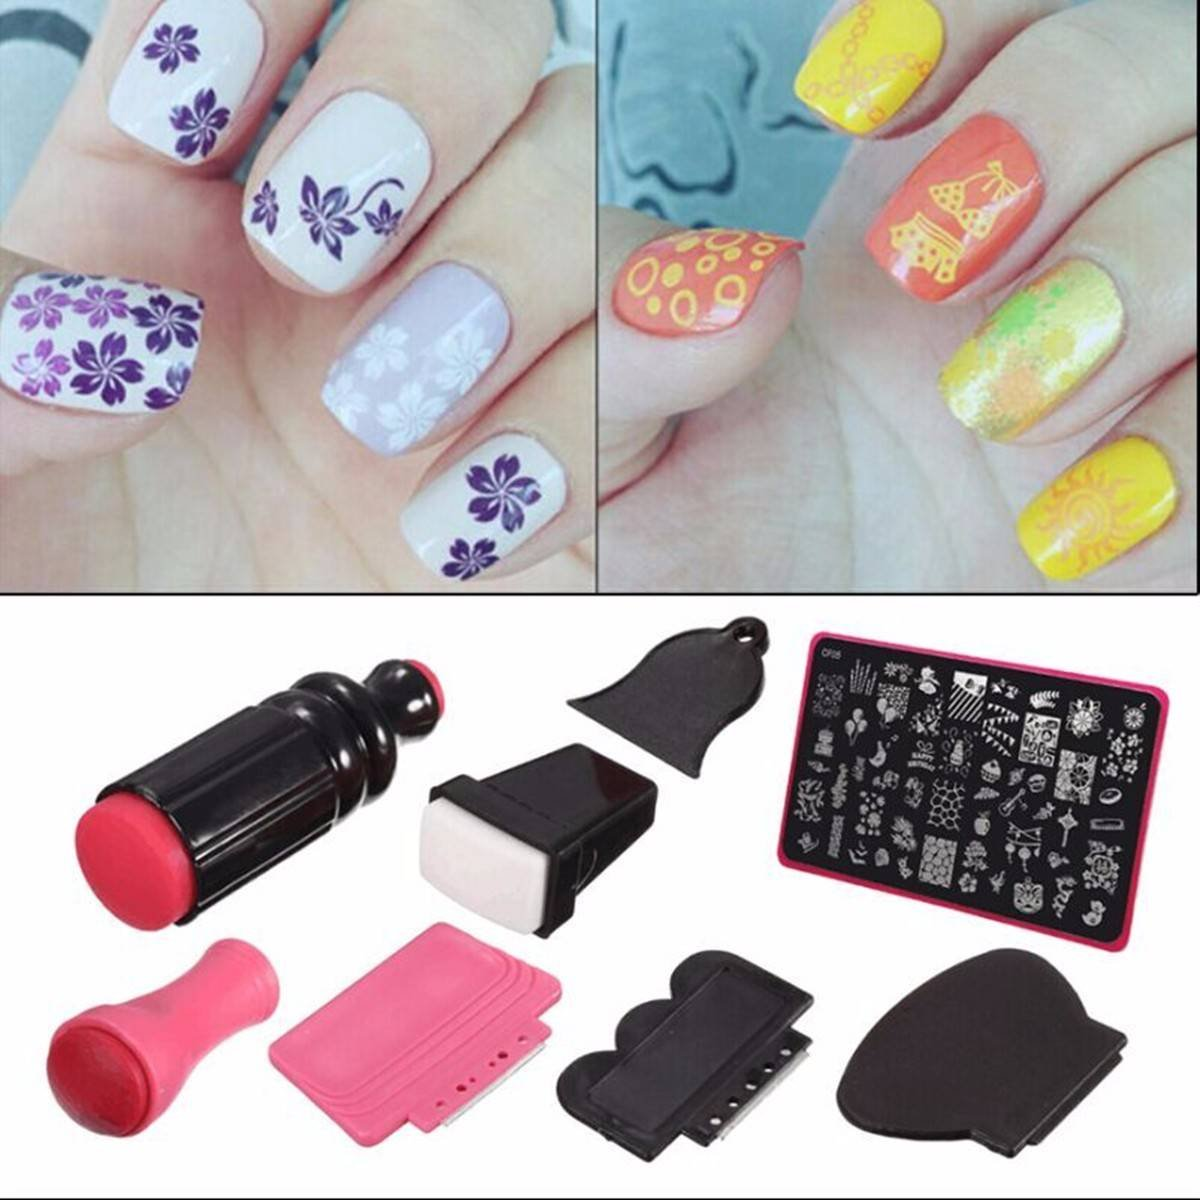 Nail Art Ideas Nail Art Products Online Shop Pictures Of Nail